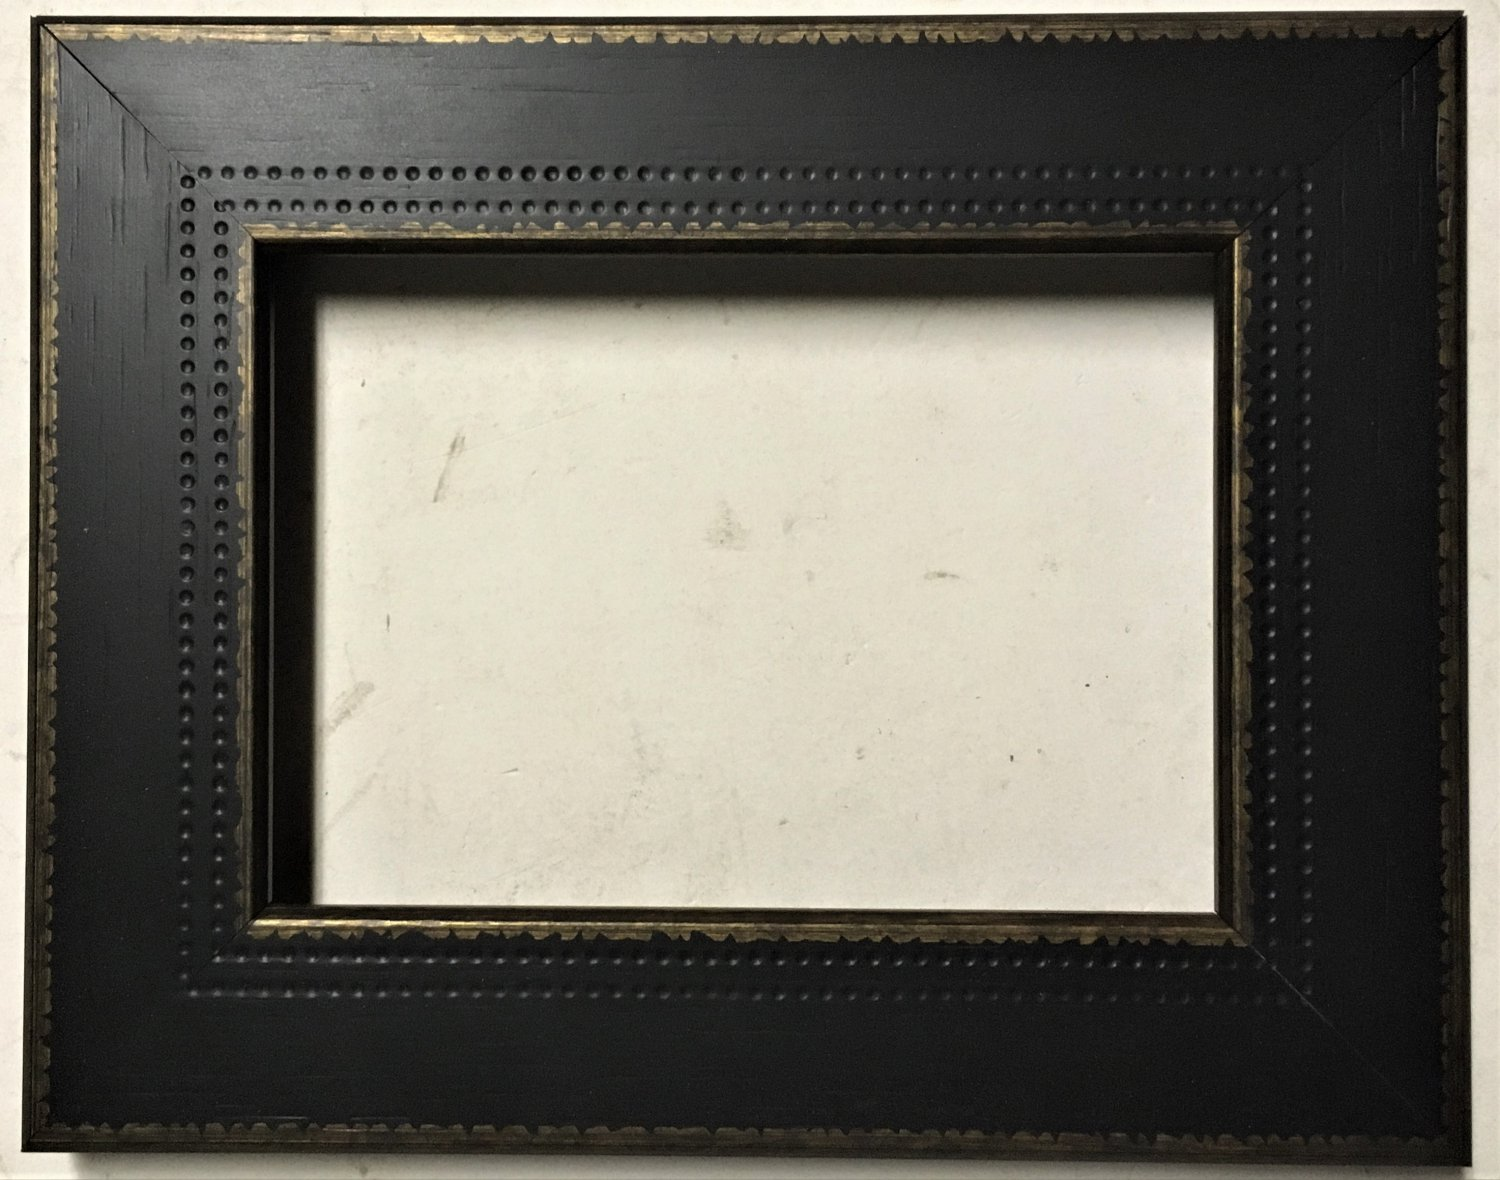 "12 x 24 1-3/4"" Black w/Gold Picture Frame"